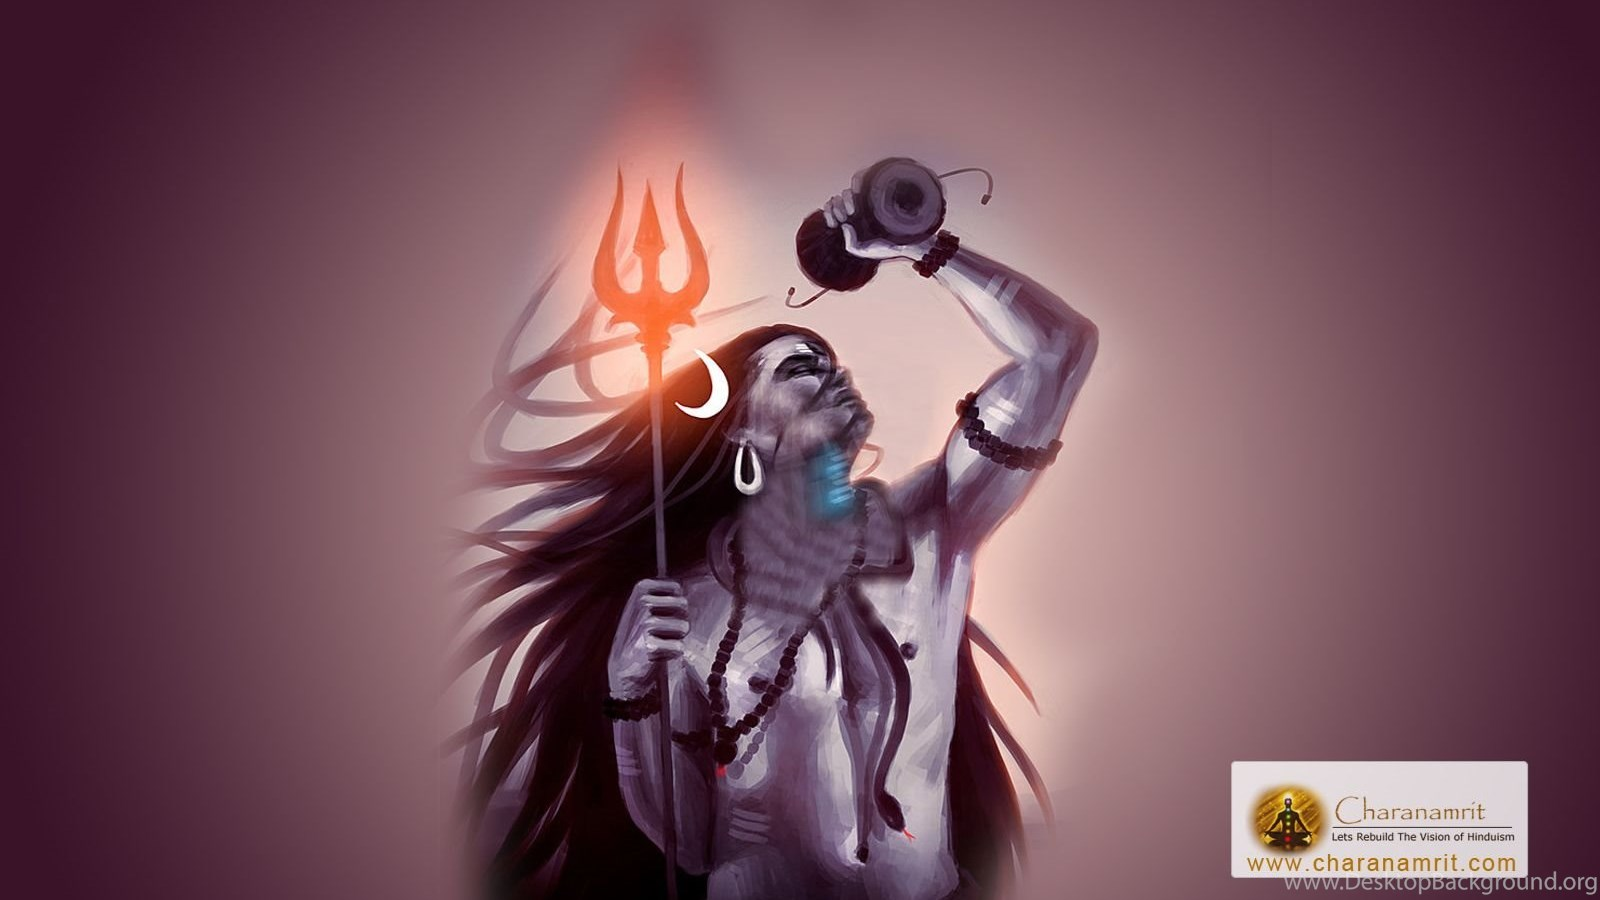 Lord Shiva 4k Wallpapers For Pc: Lord Shiva Attractive Hd Wallpapers For Free Download